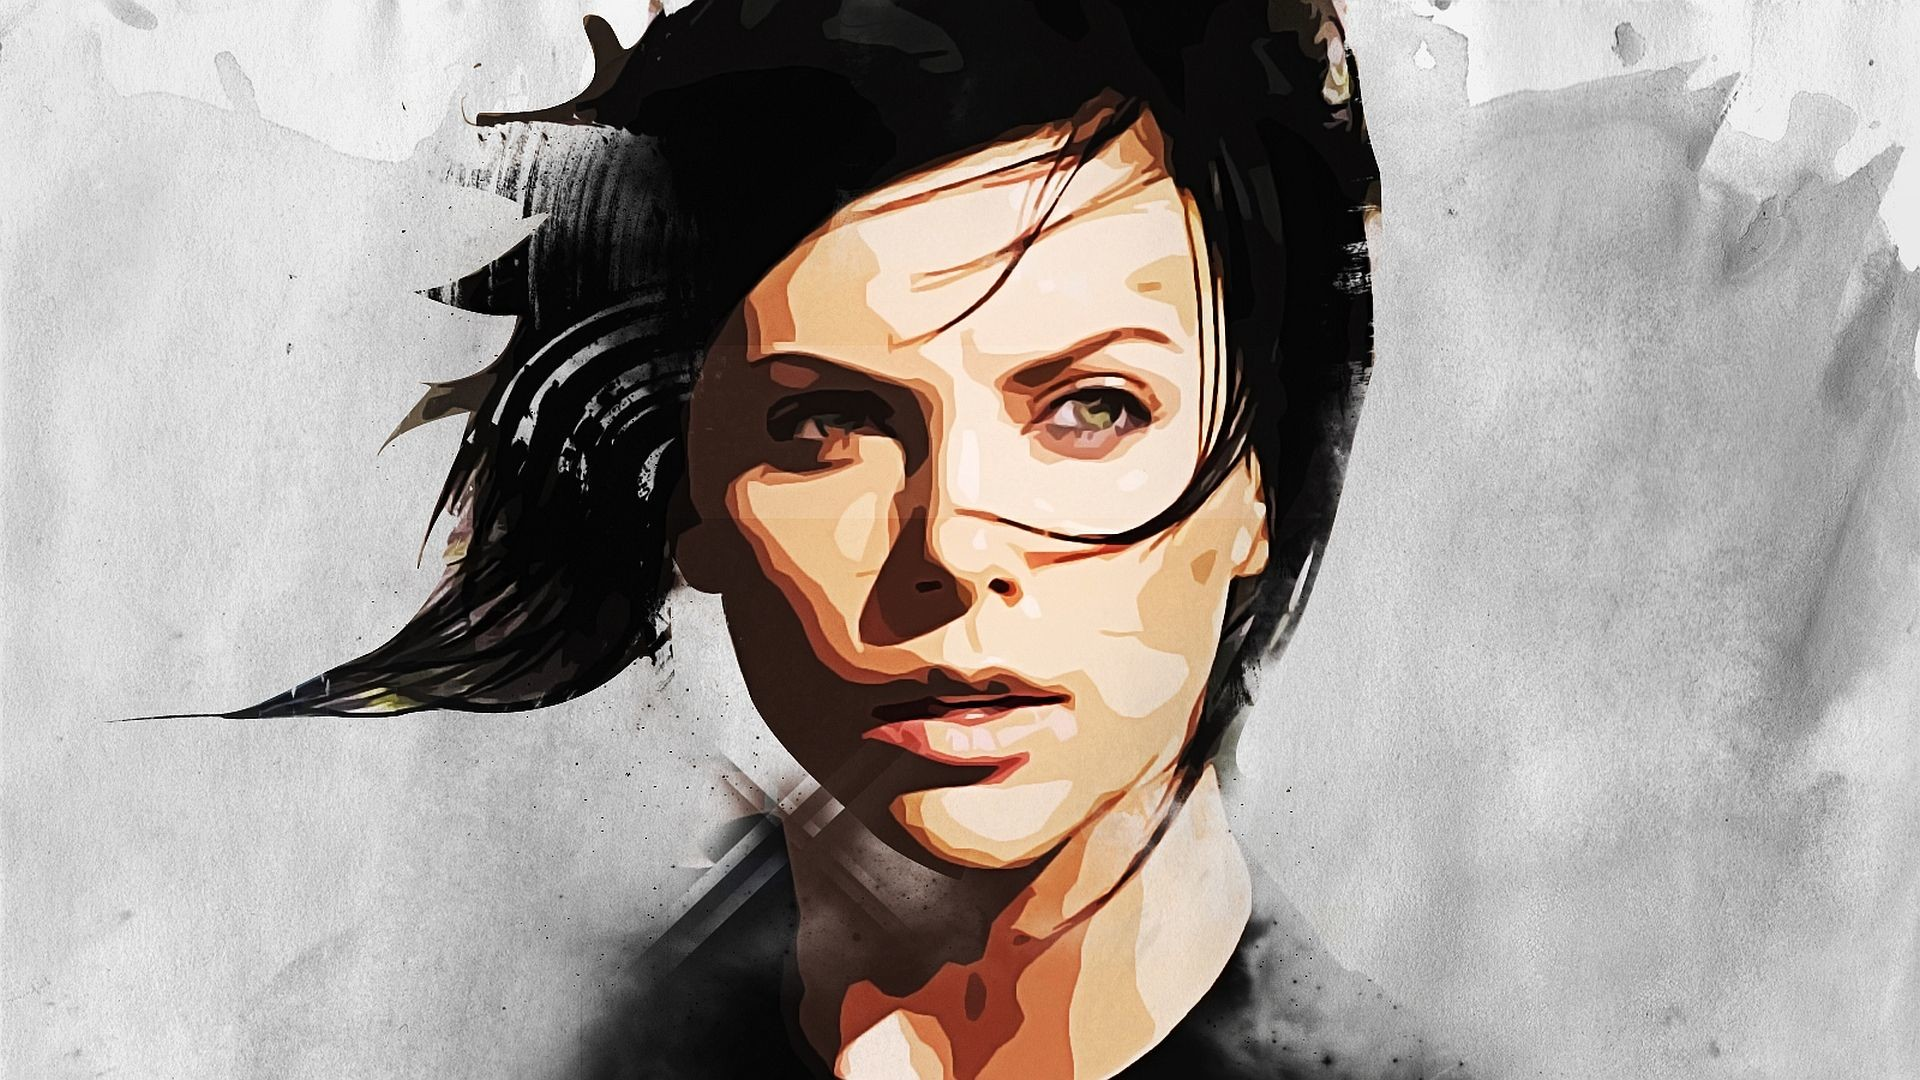 Res: 1920x1080, Aeon Flux Full HD Wallpaper and Background